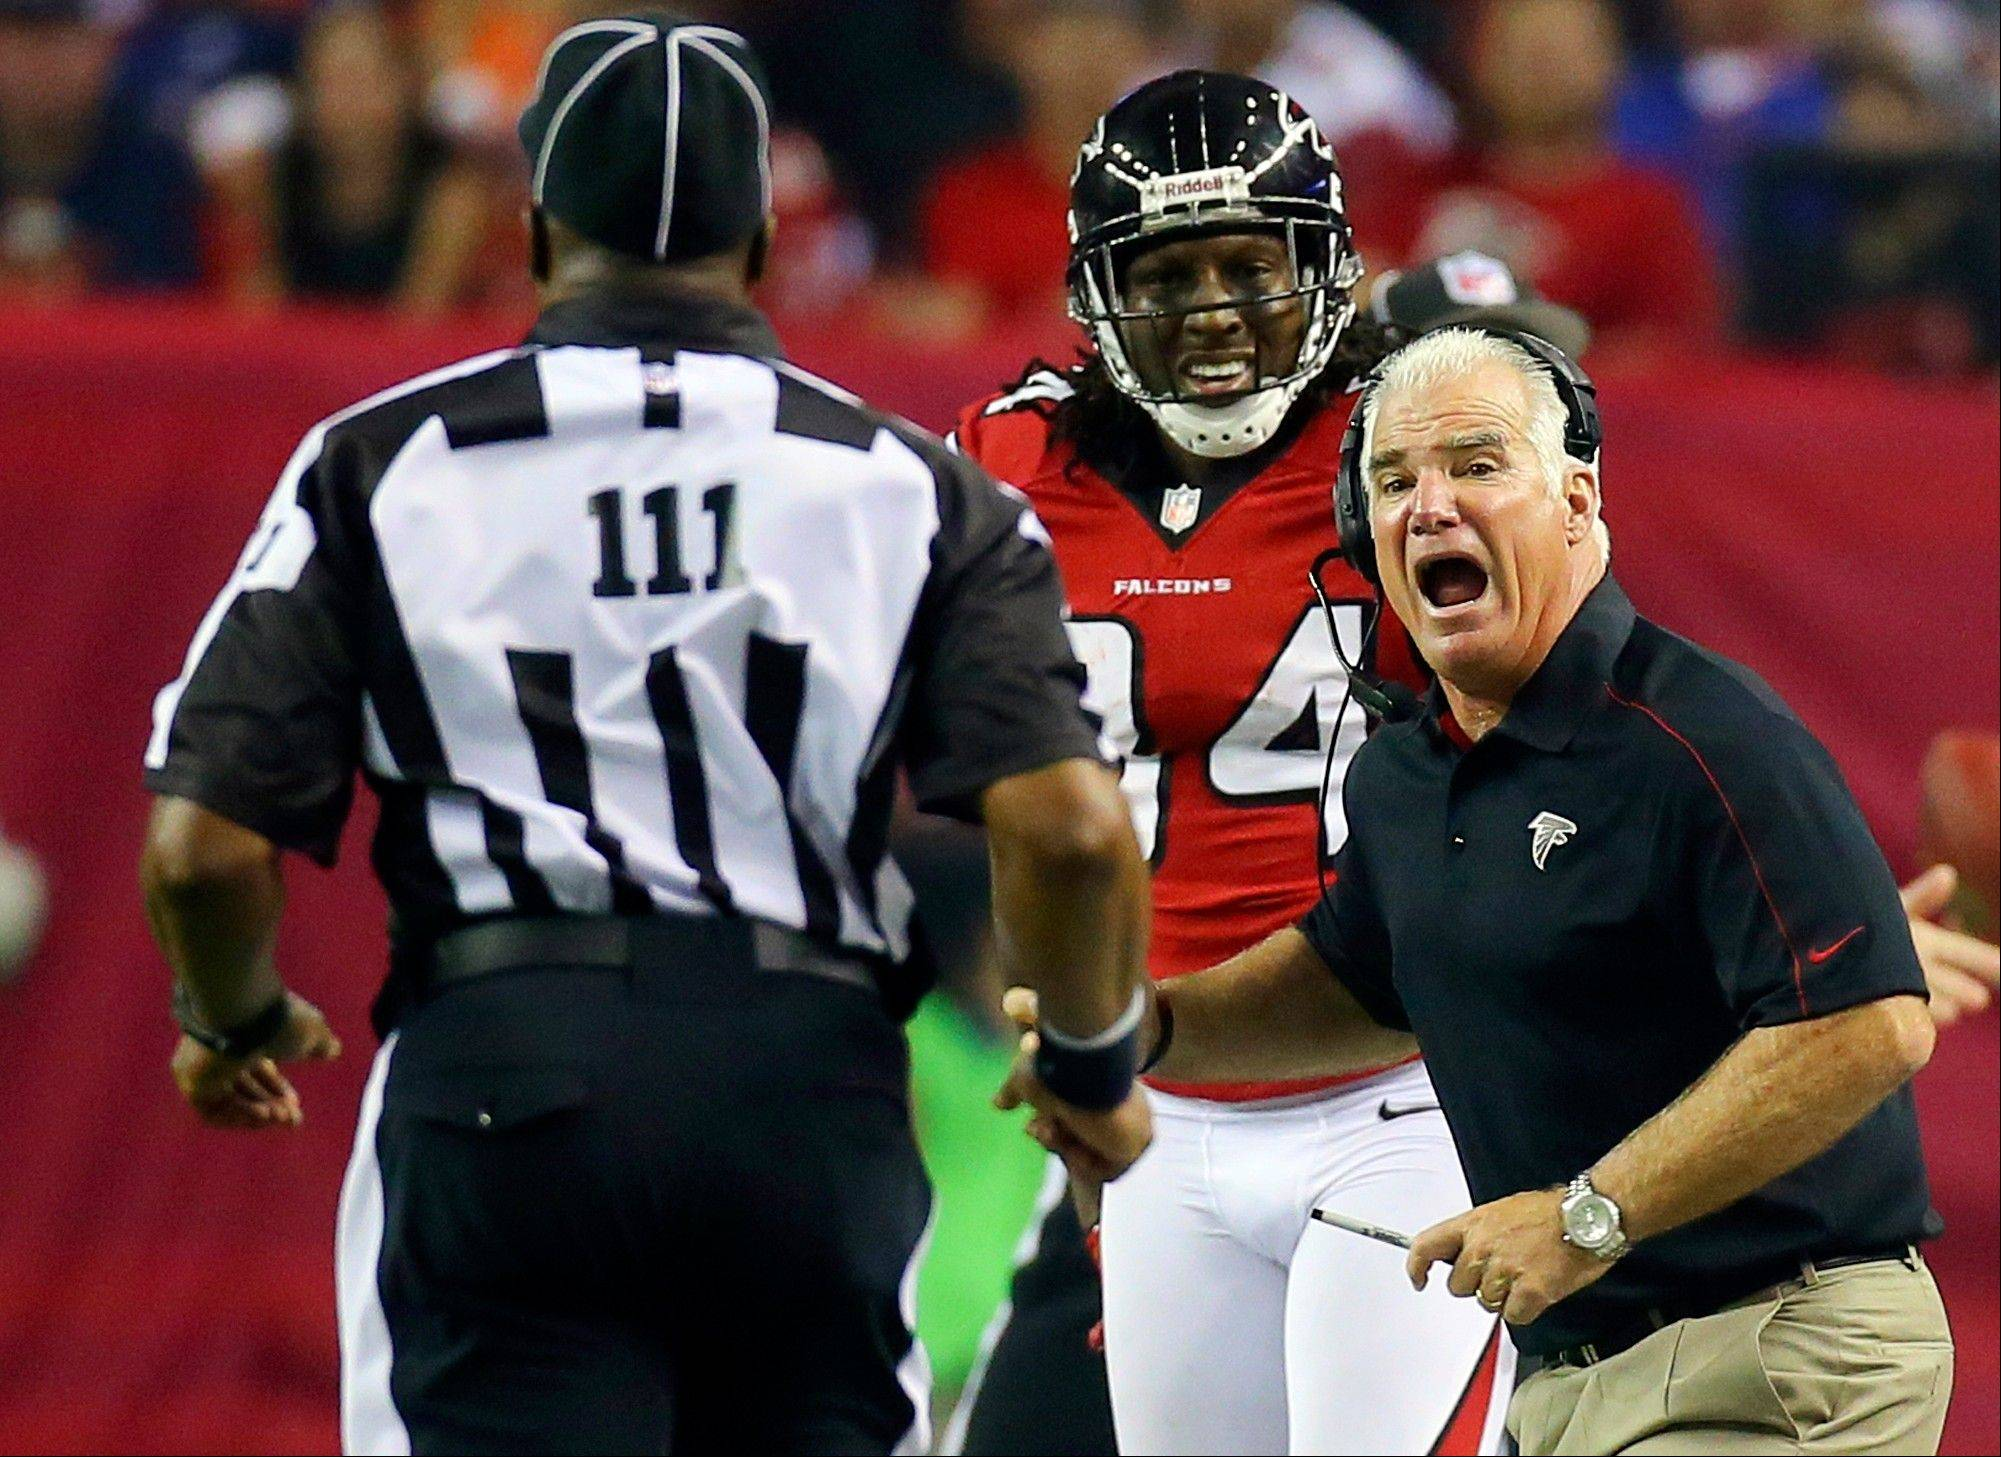 Atlanta Falcons head coach Mike Smith, right, argues for a pass interference call on a play involving wide receiver Roddy White, center, with an official Monday. Statistics show strong similarities between this year's number of penalties and last year's flags thrown by the guys who are currently locked out.